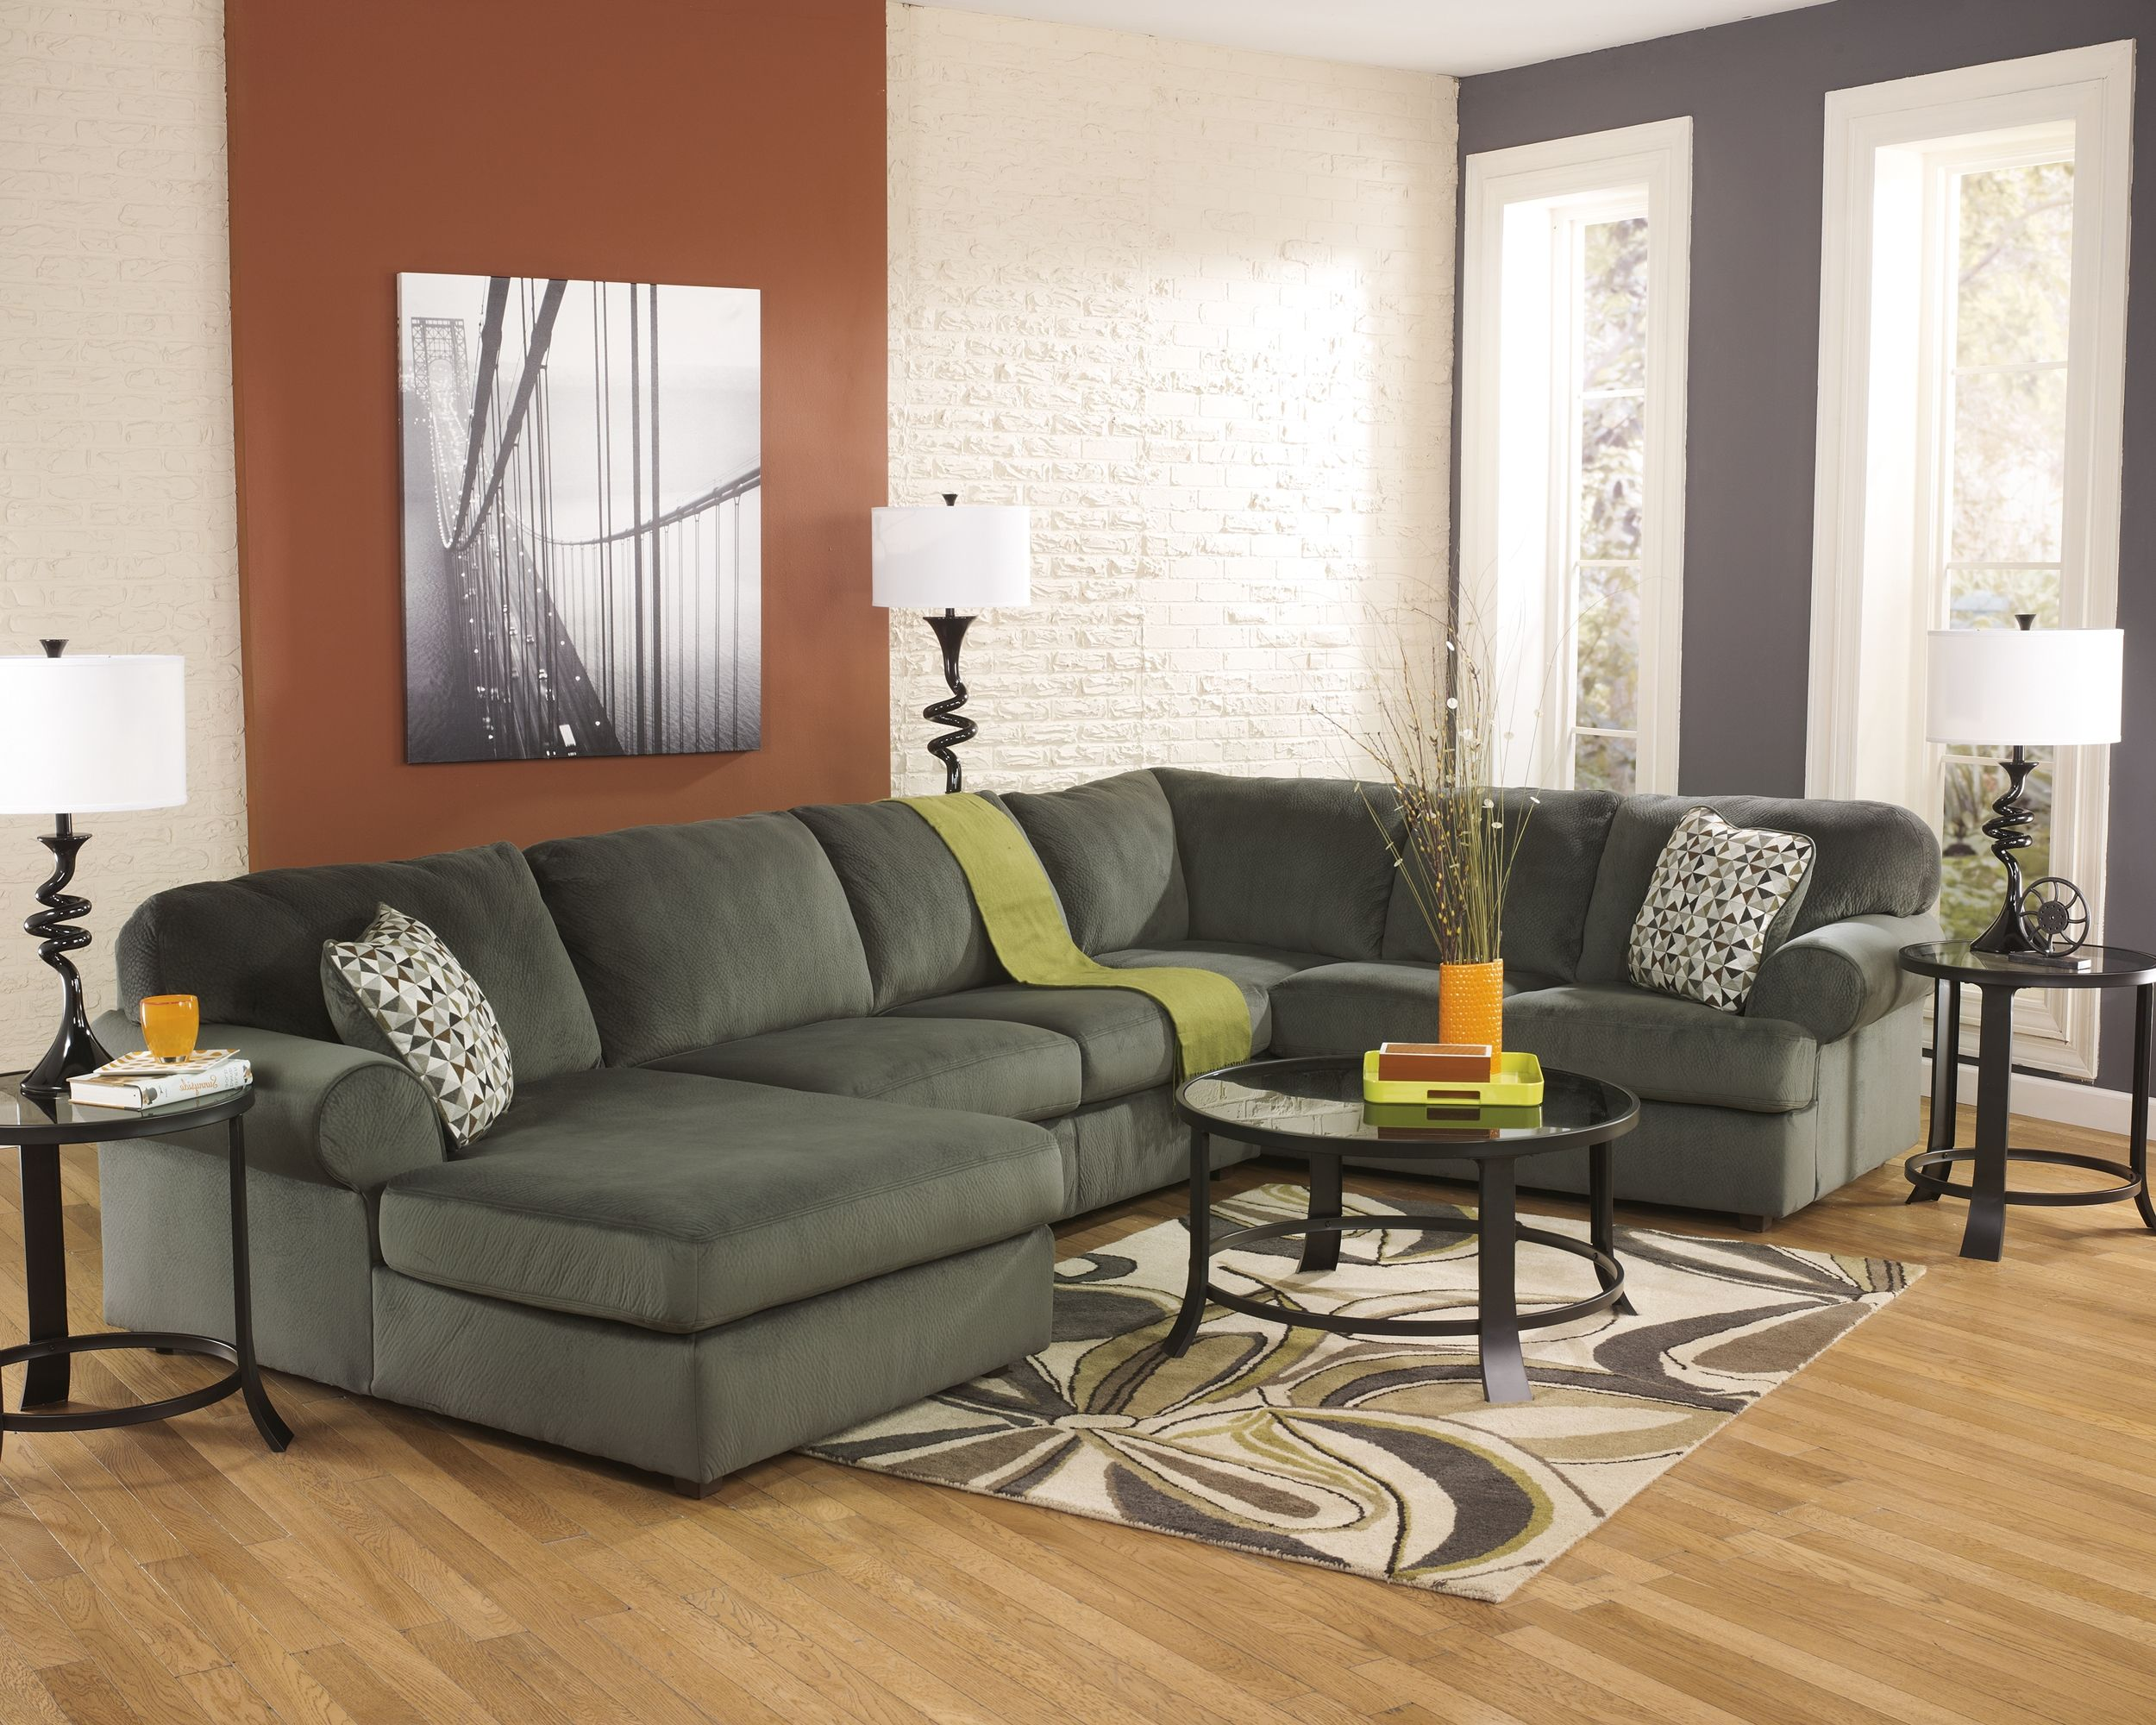 Fabulous Jessa Place 3 Piece Sectional Pewter Products Living Gmtry Best Dining Table And Chair Ideas Images Gmtryco